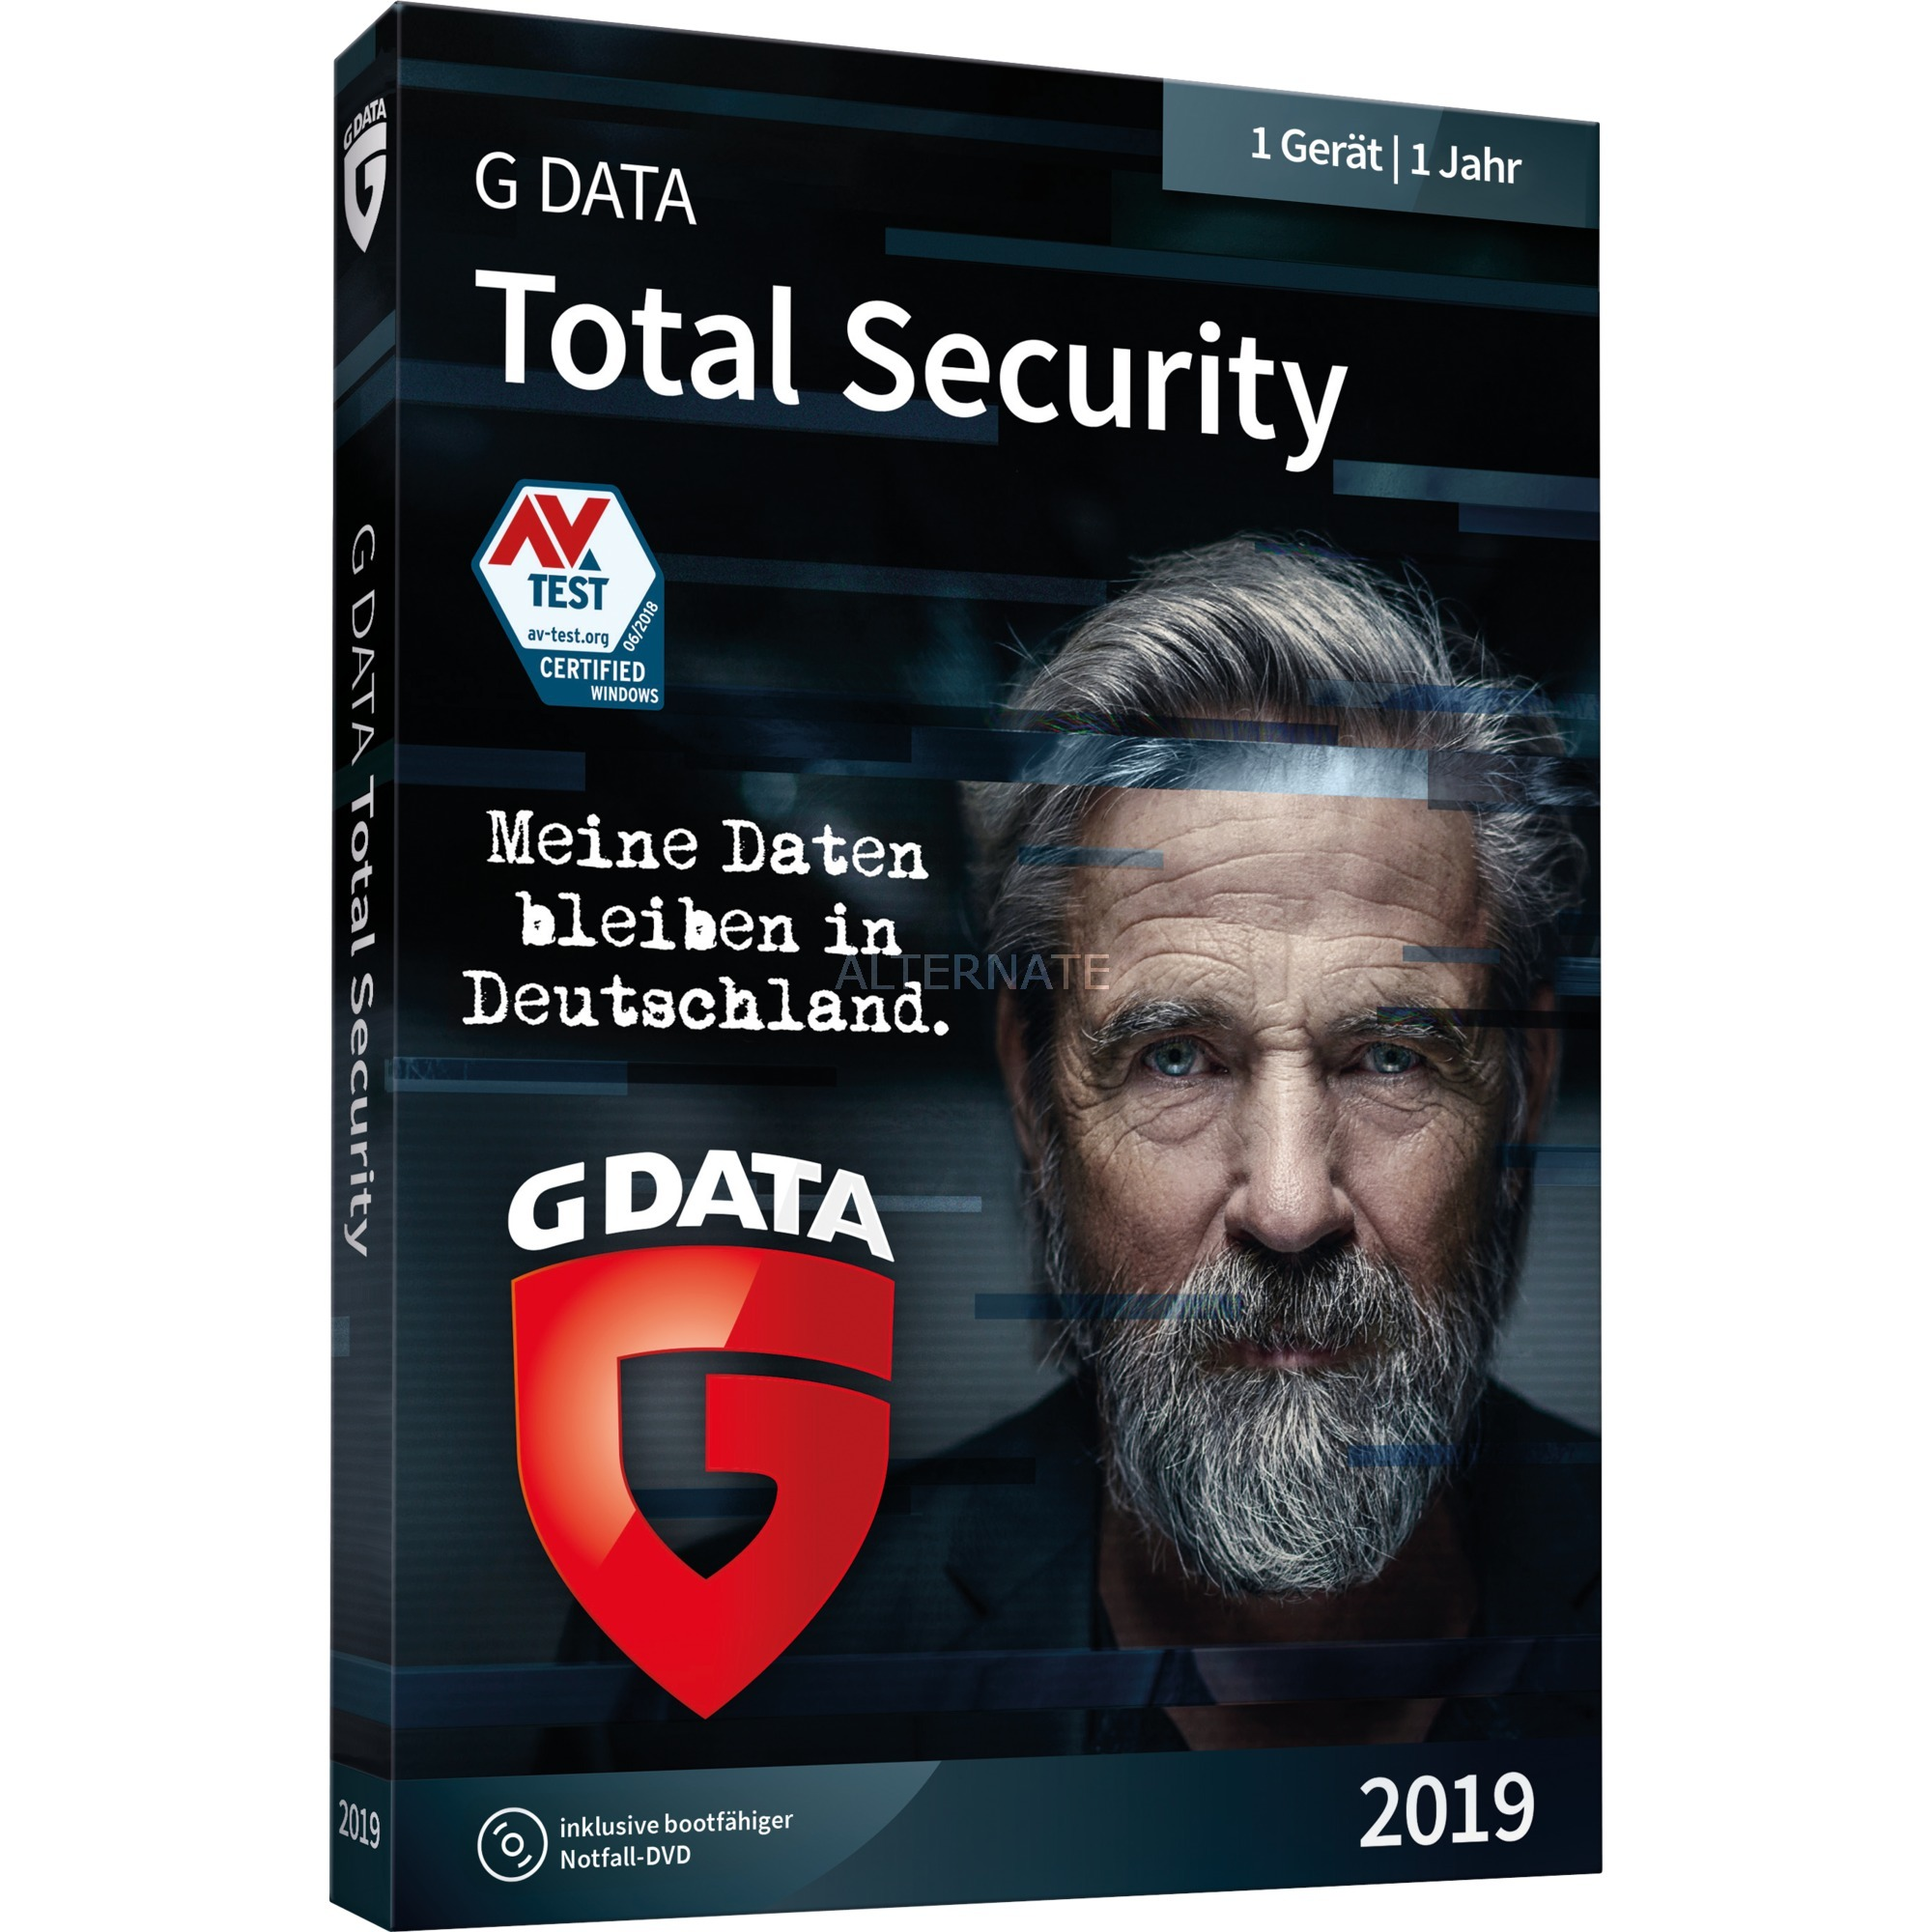 GDATA TOTAL SECURITY 2019 - 1 PC 1 Jahr BOX 1 año(s) Alemán, Software